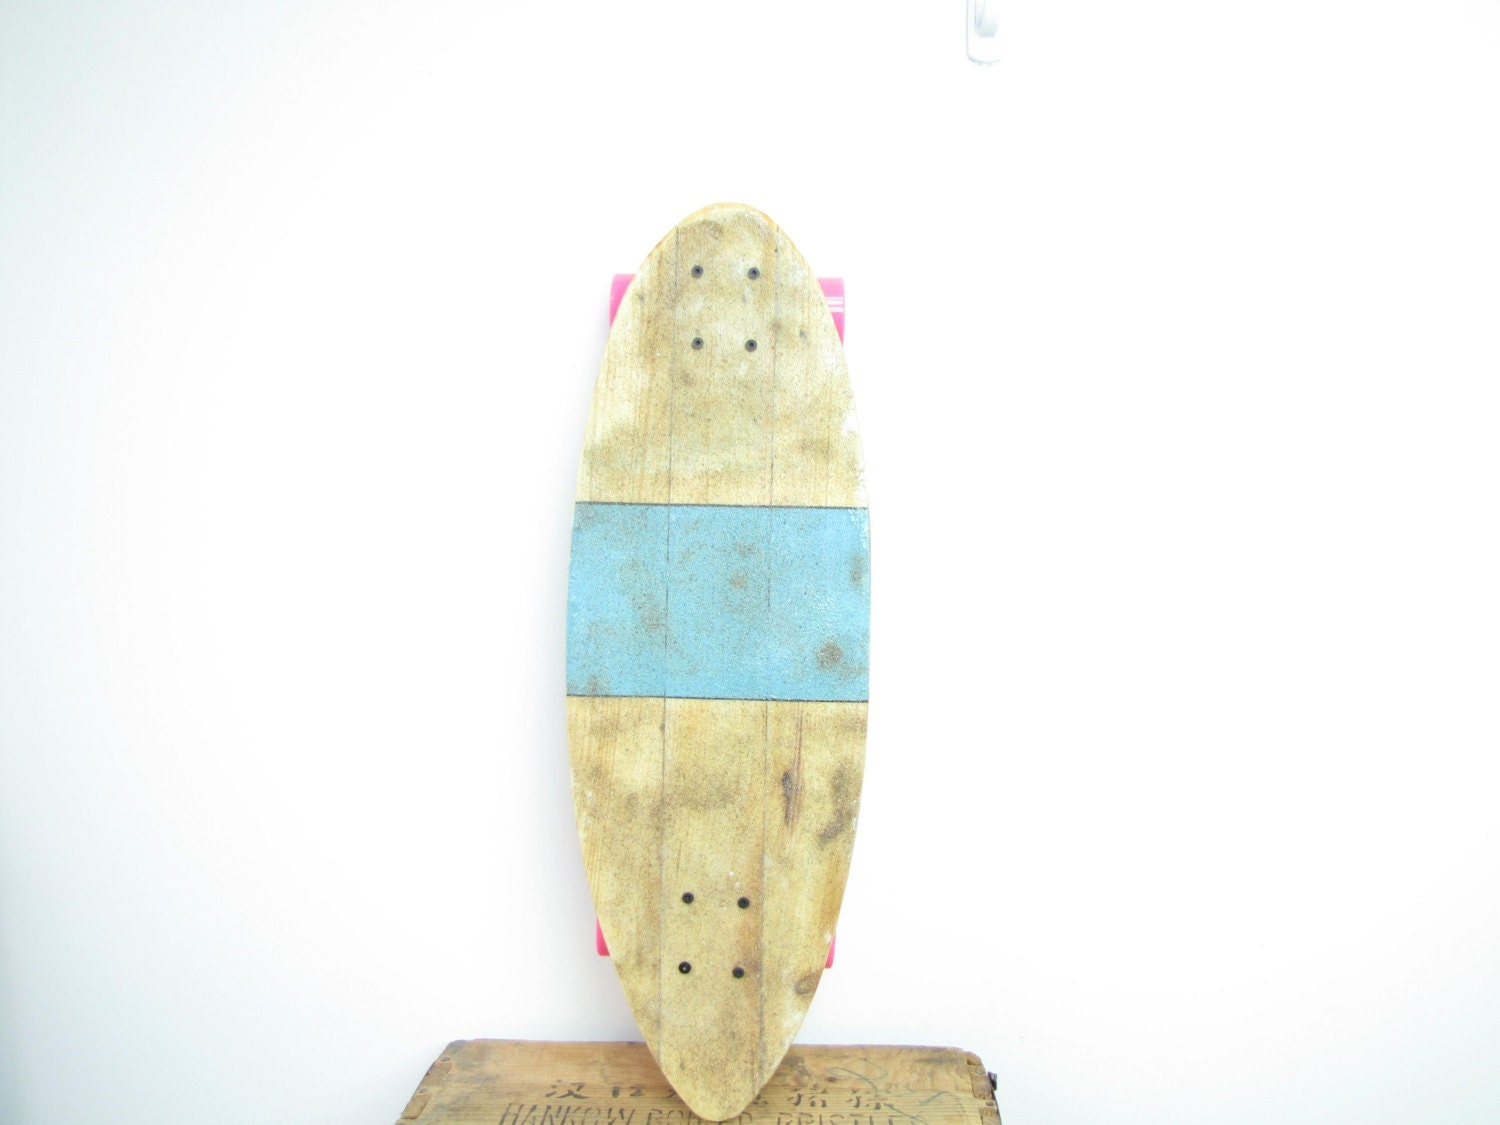 recycled pallet wood longboard skateboard handmade with